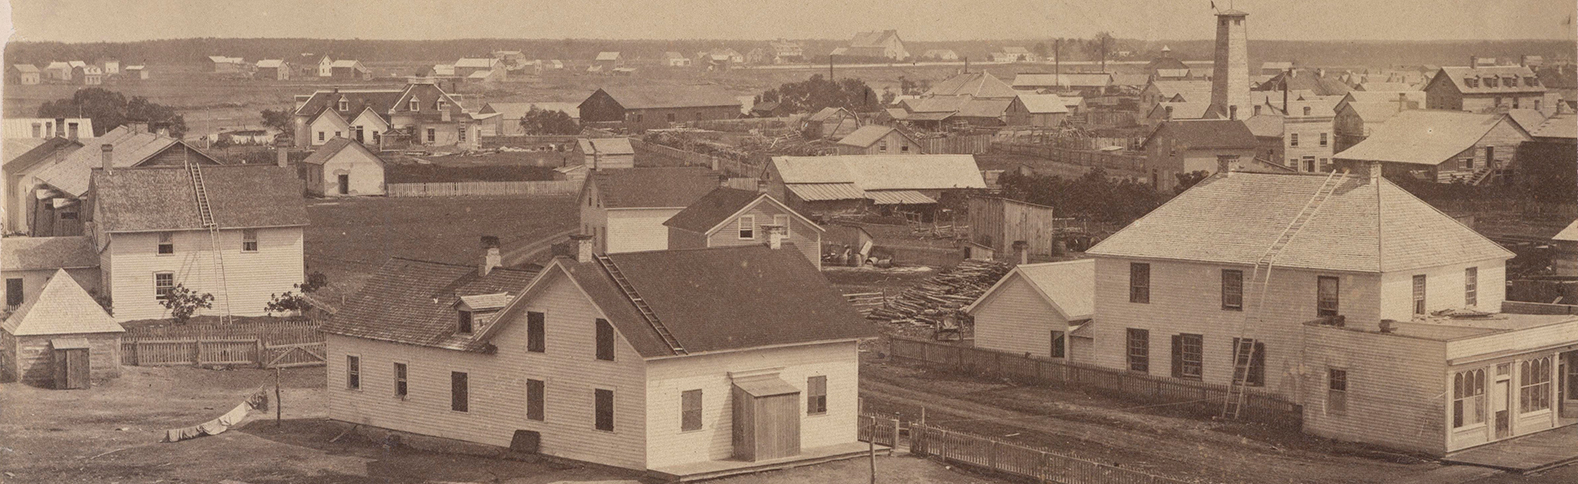 Part of East Ward, with St. Boniface in the Distance, 1875